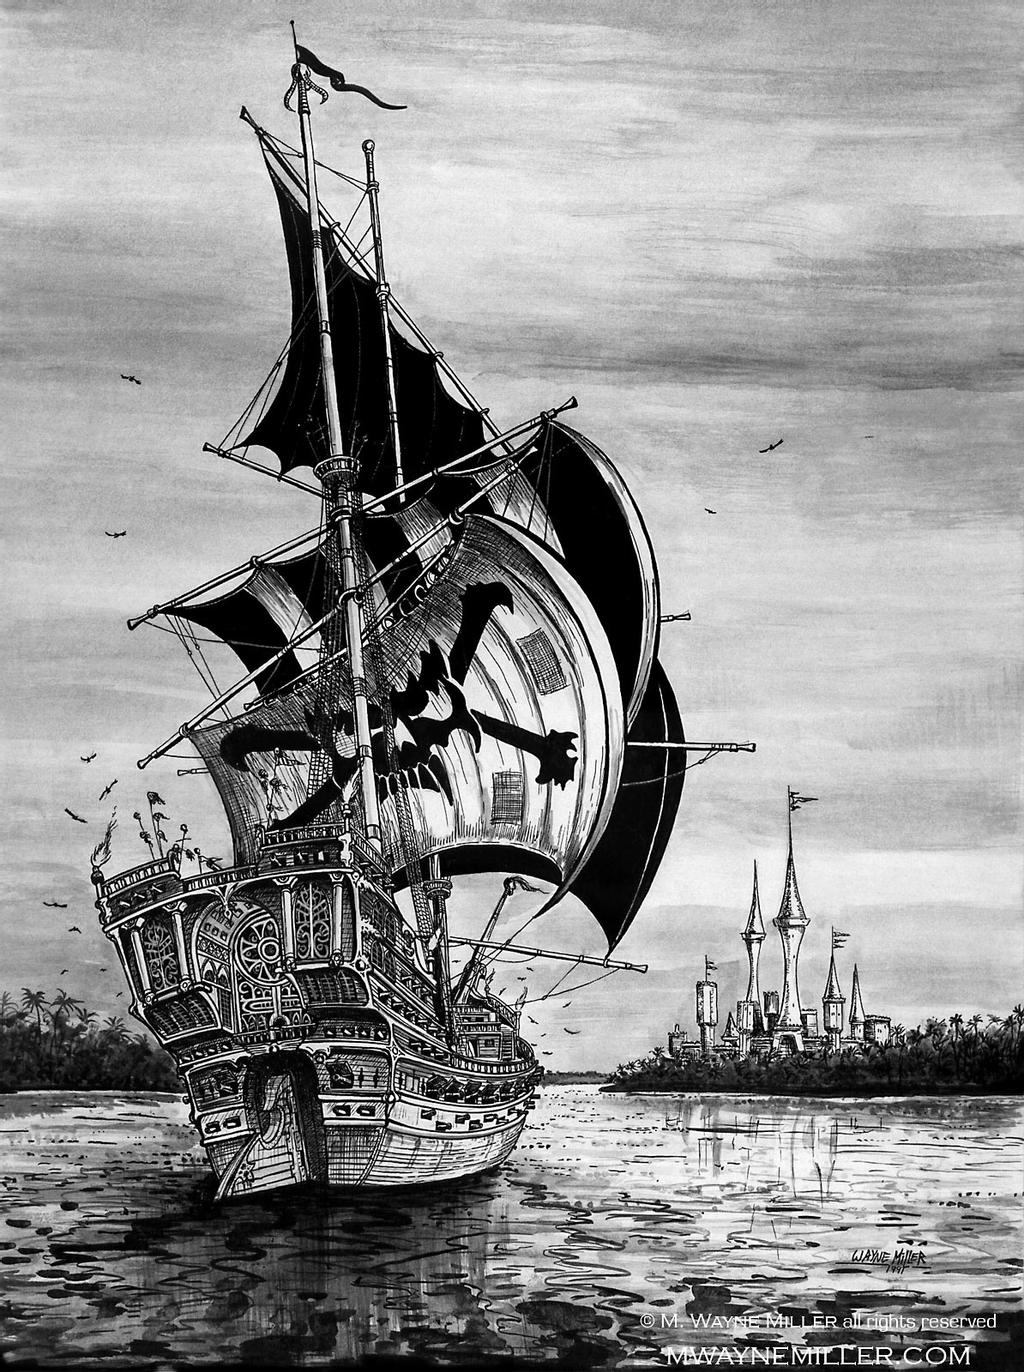 pirate ship sketch old ship line drawing frigate 001 png ship drawing sketch pirate ship